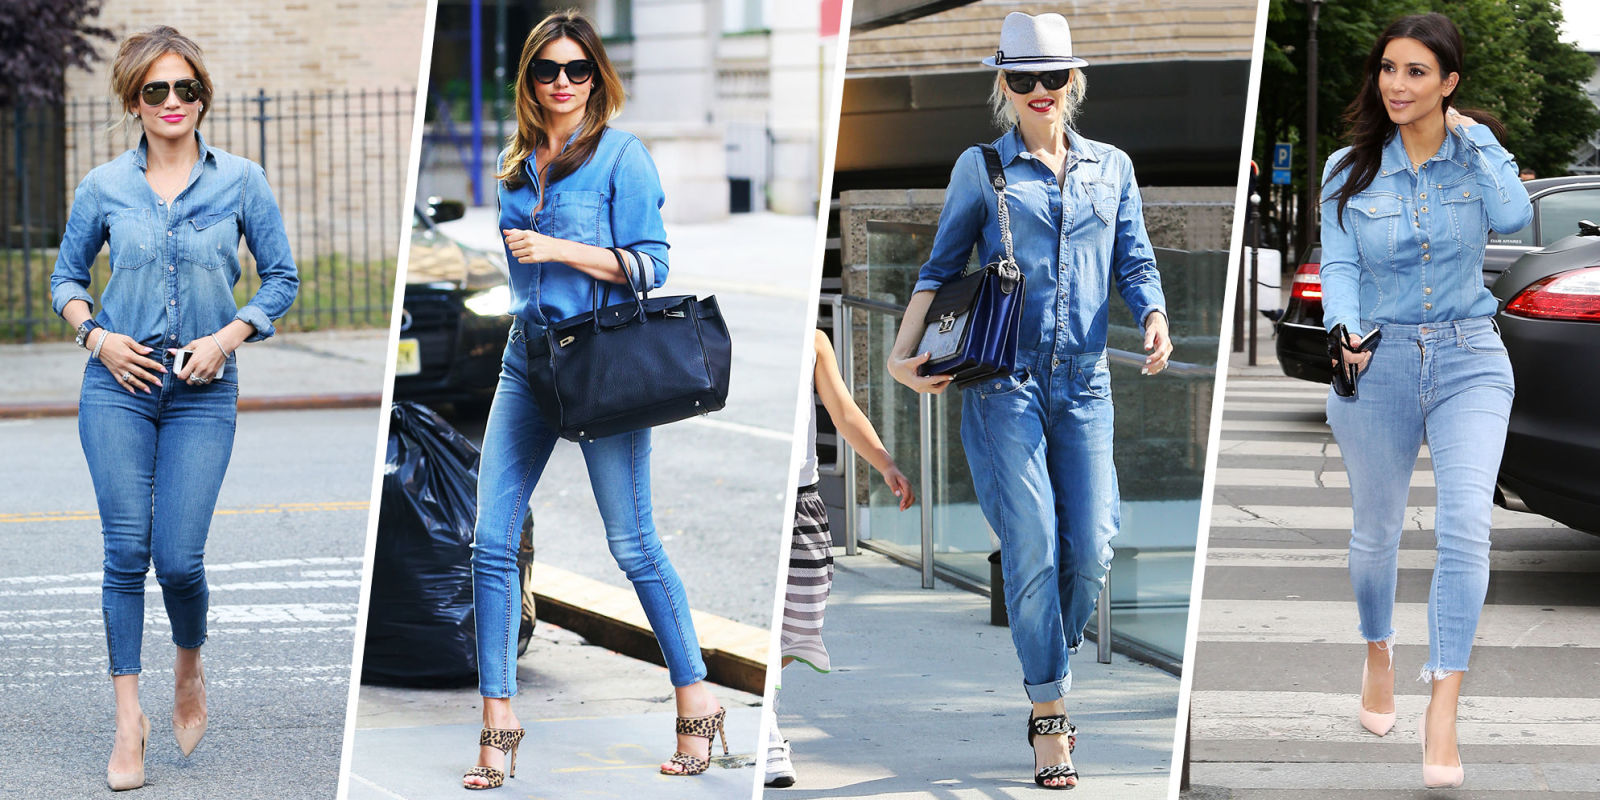 Celebrity Denim | Celebrities in Denim Jeans | Denimology